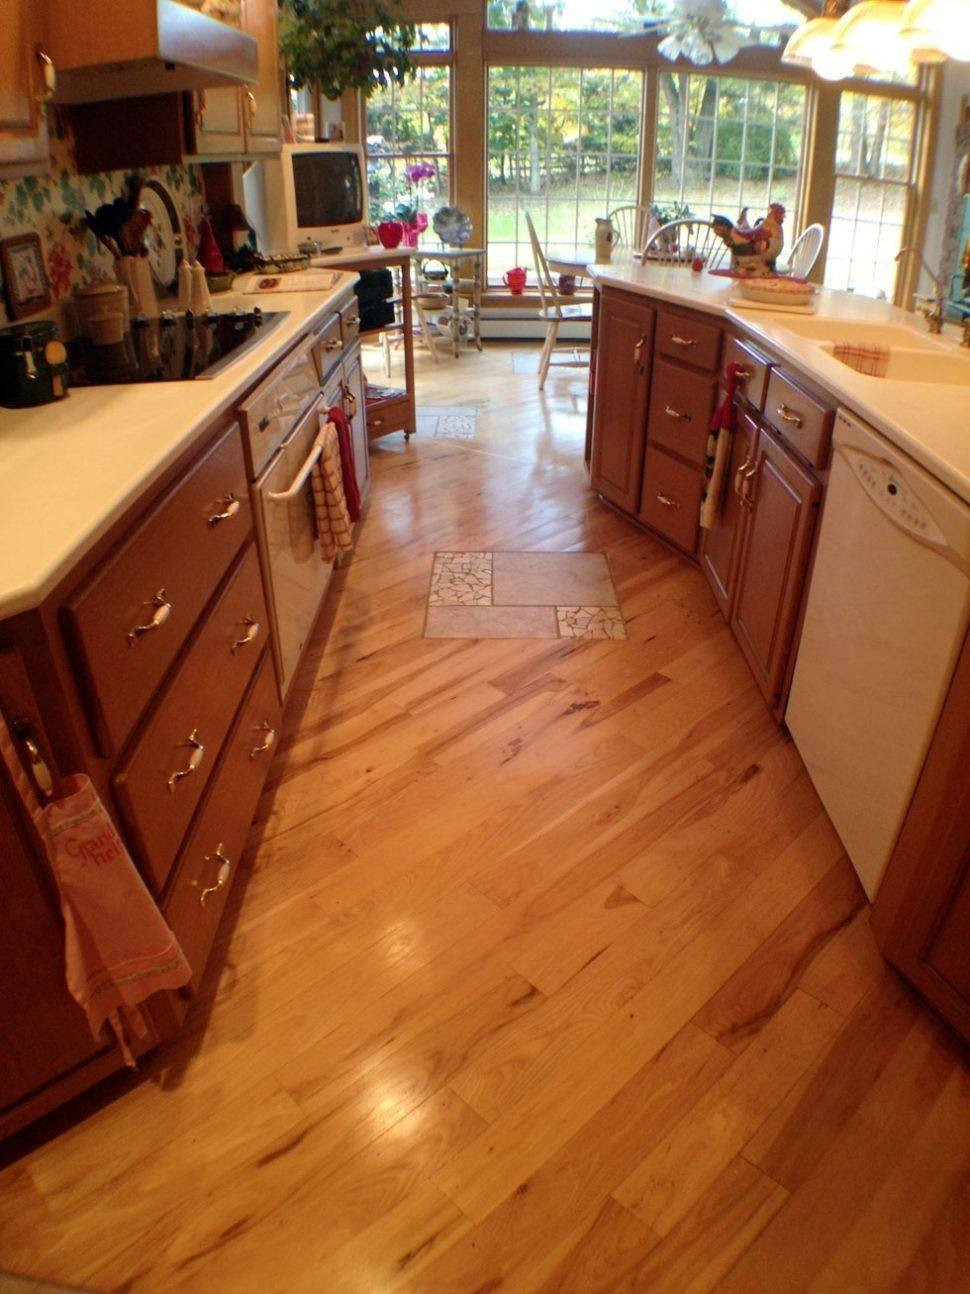 hardwood flooring price philippines of the flooring price per square foot amazing design best flooring ideas within flooring price per square foot beautiful of hardwood flooring cost per sq ft fresh floor floor